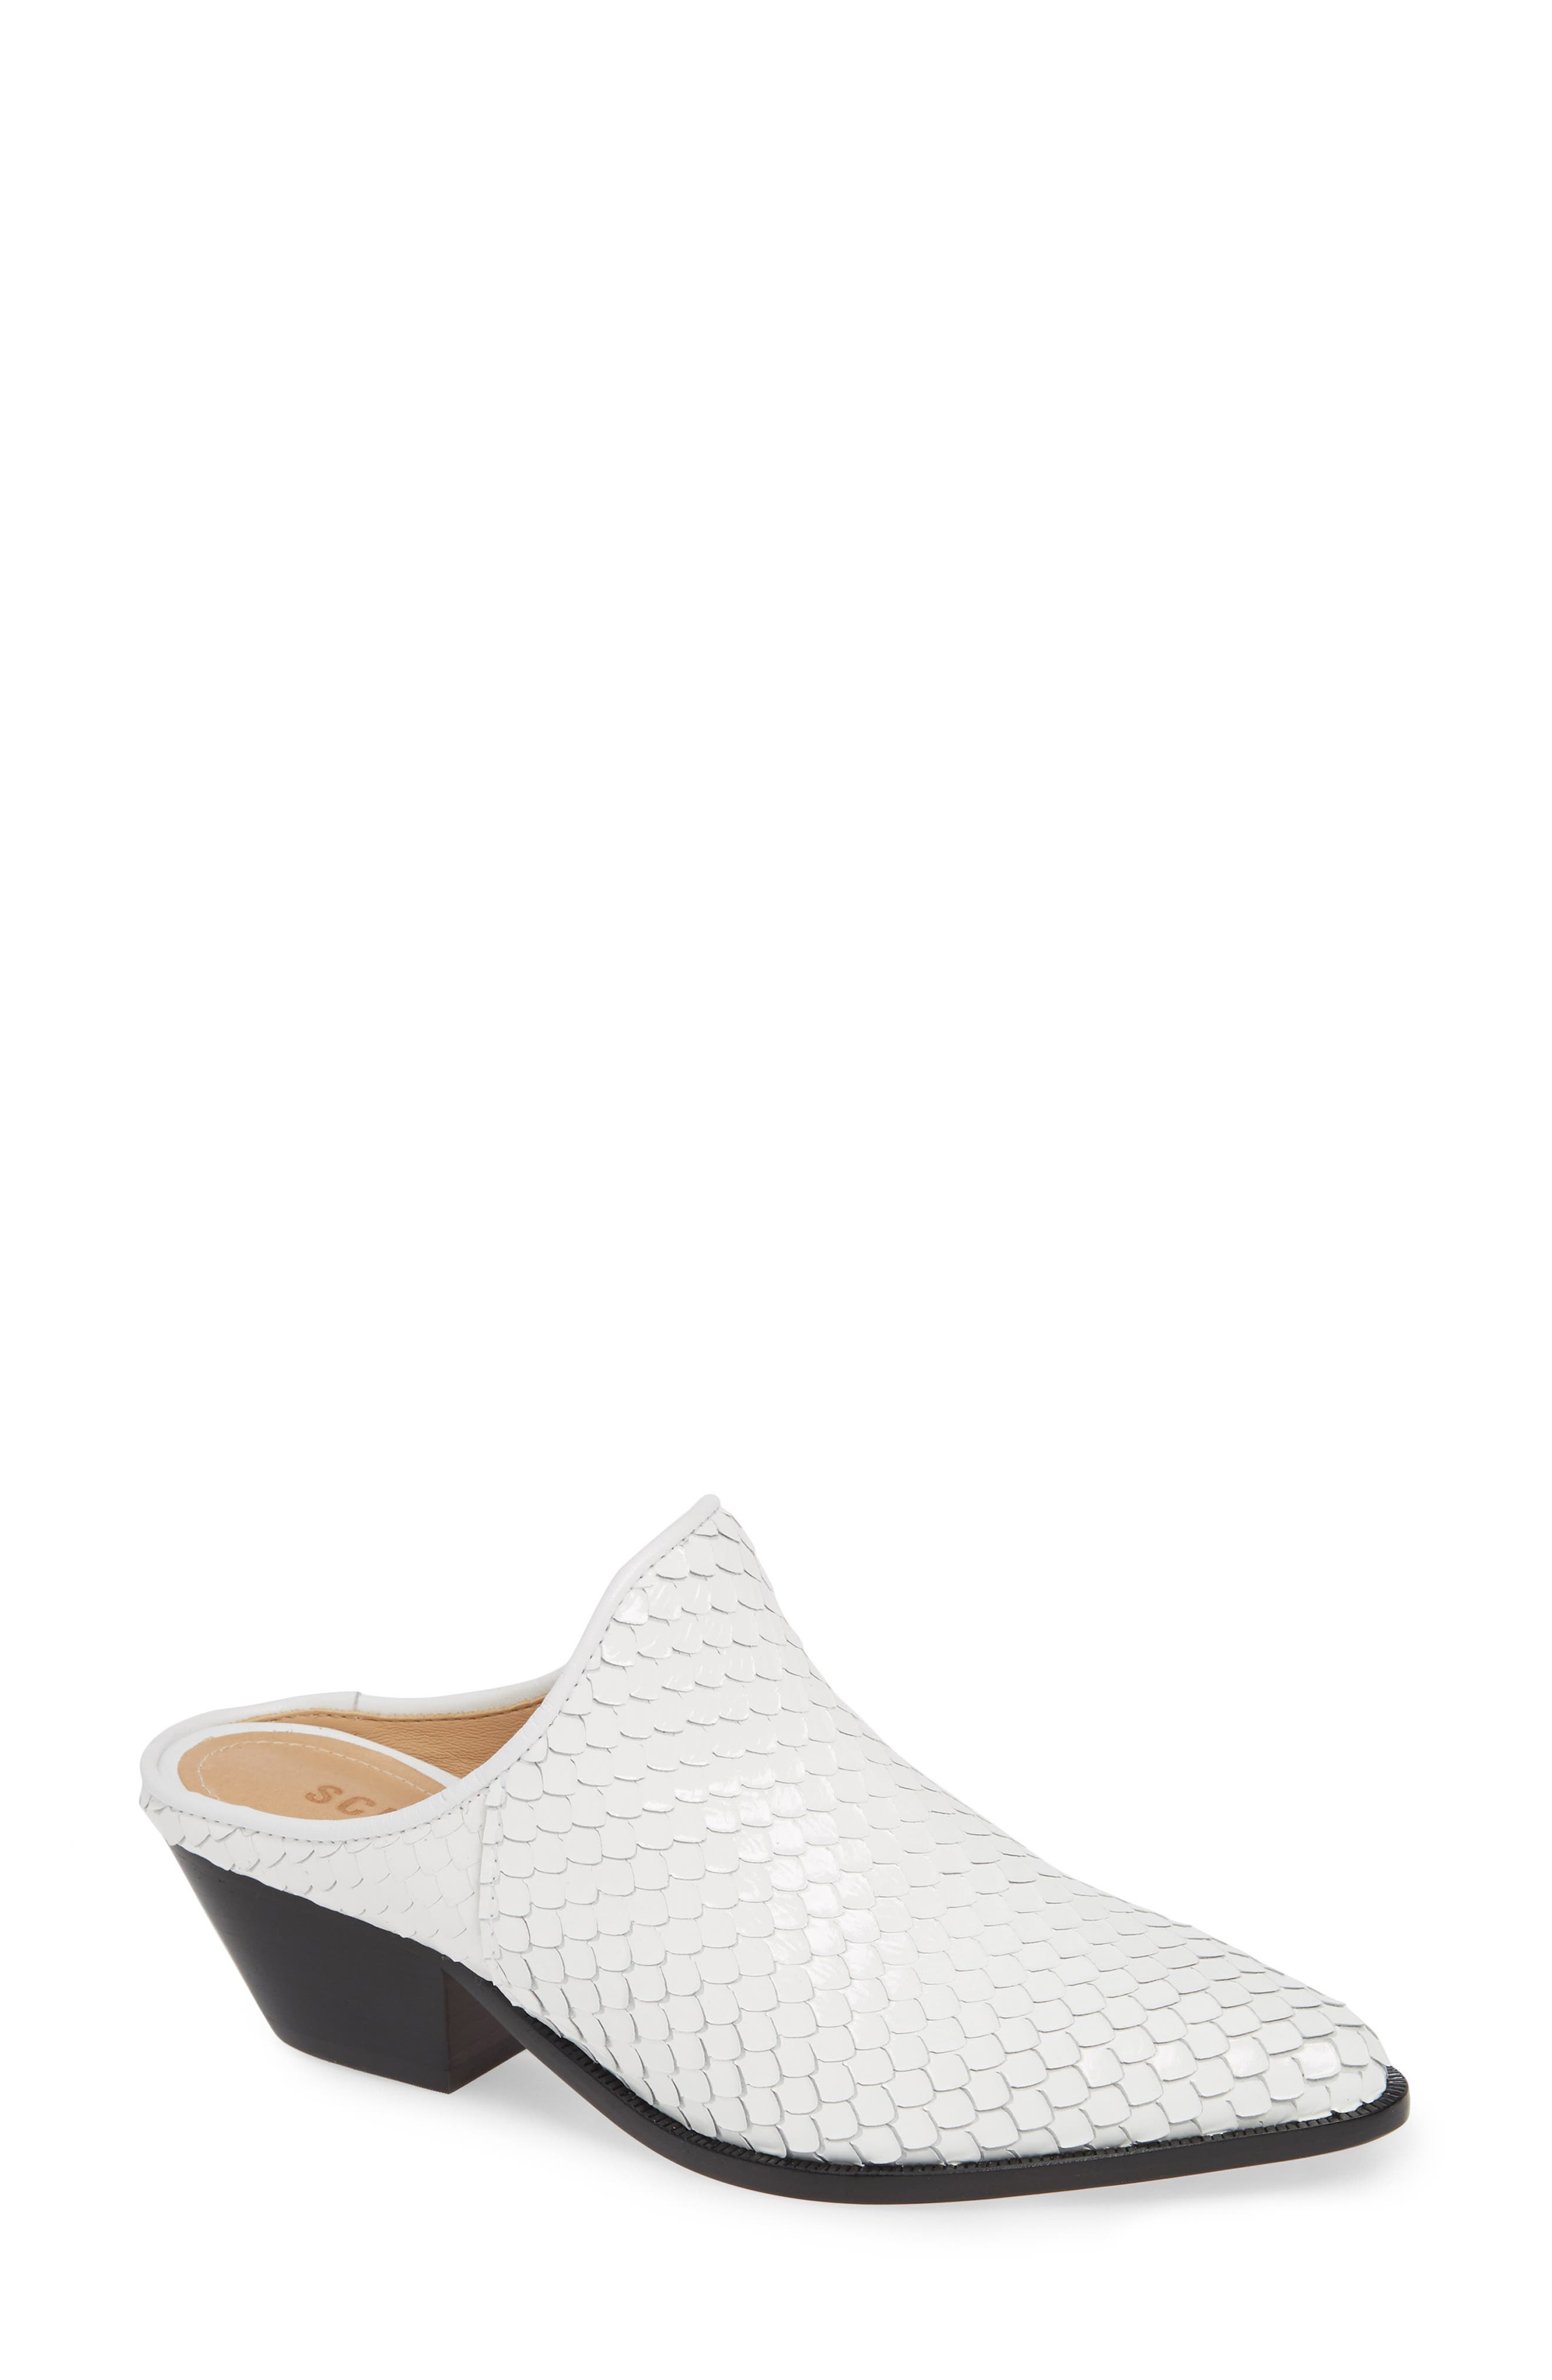 Leanny Mule,                             Main thumbnail 1, color,                             WHITE LEATHER